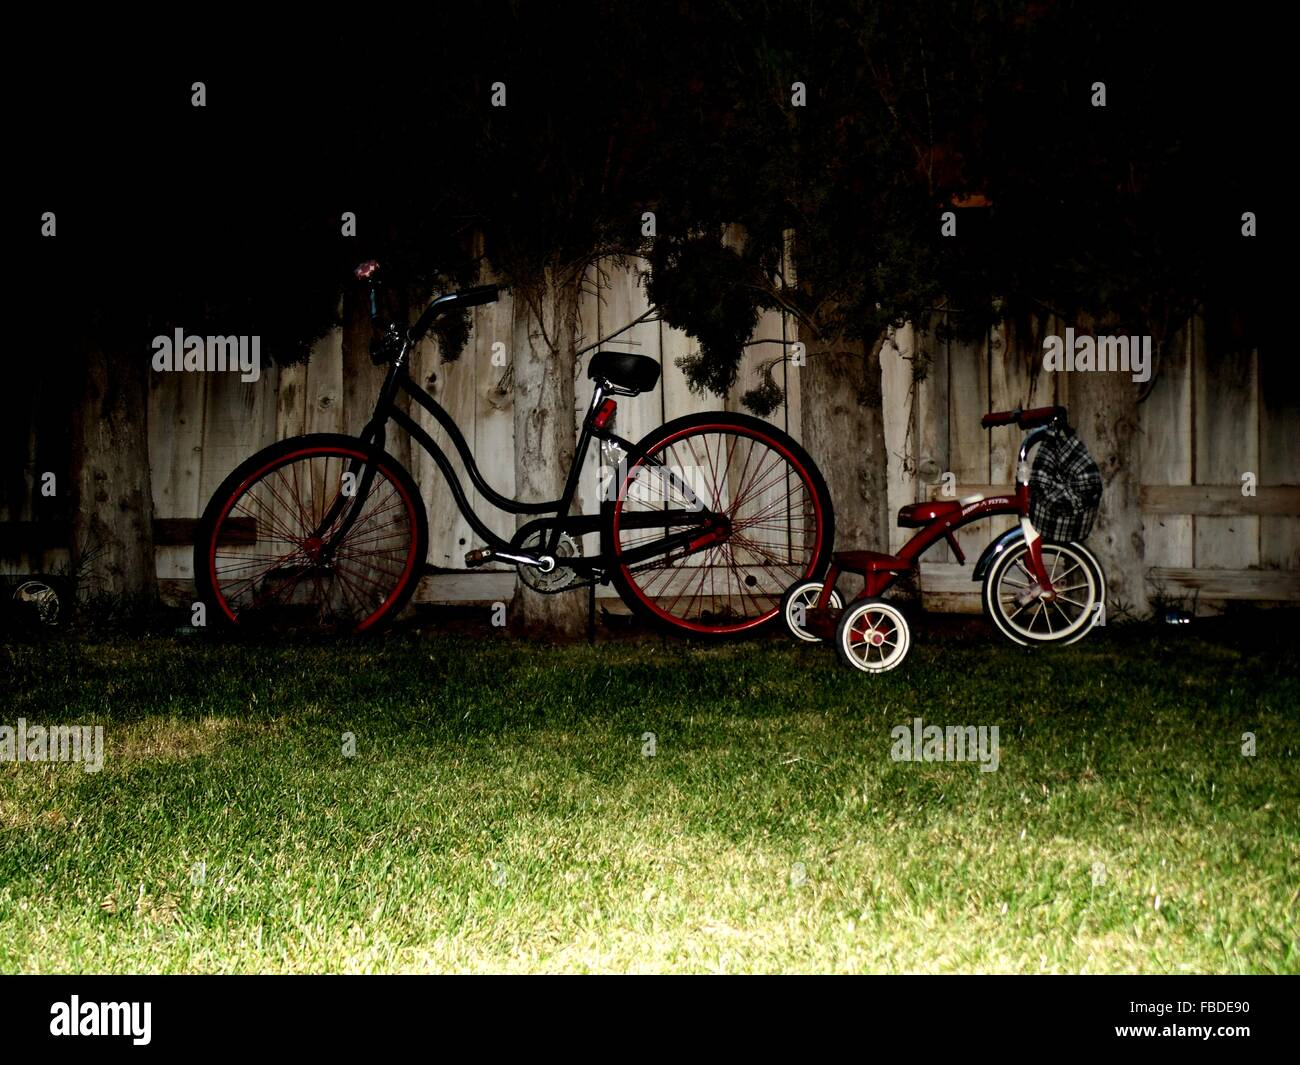 Bicycles By Fence At Park - Stock Image